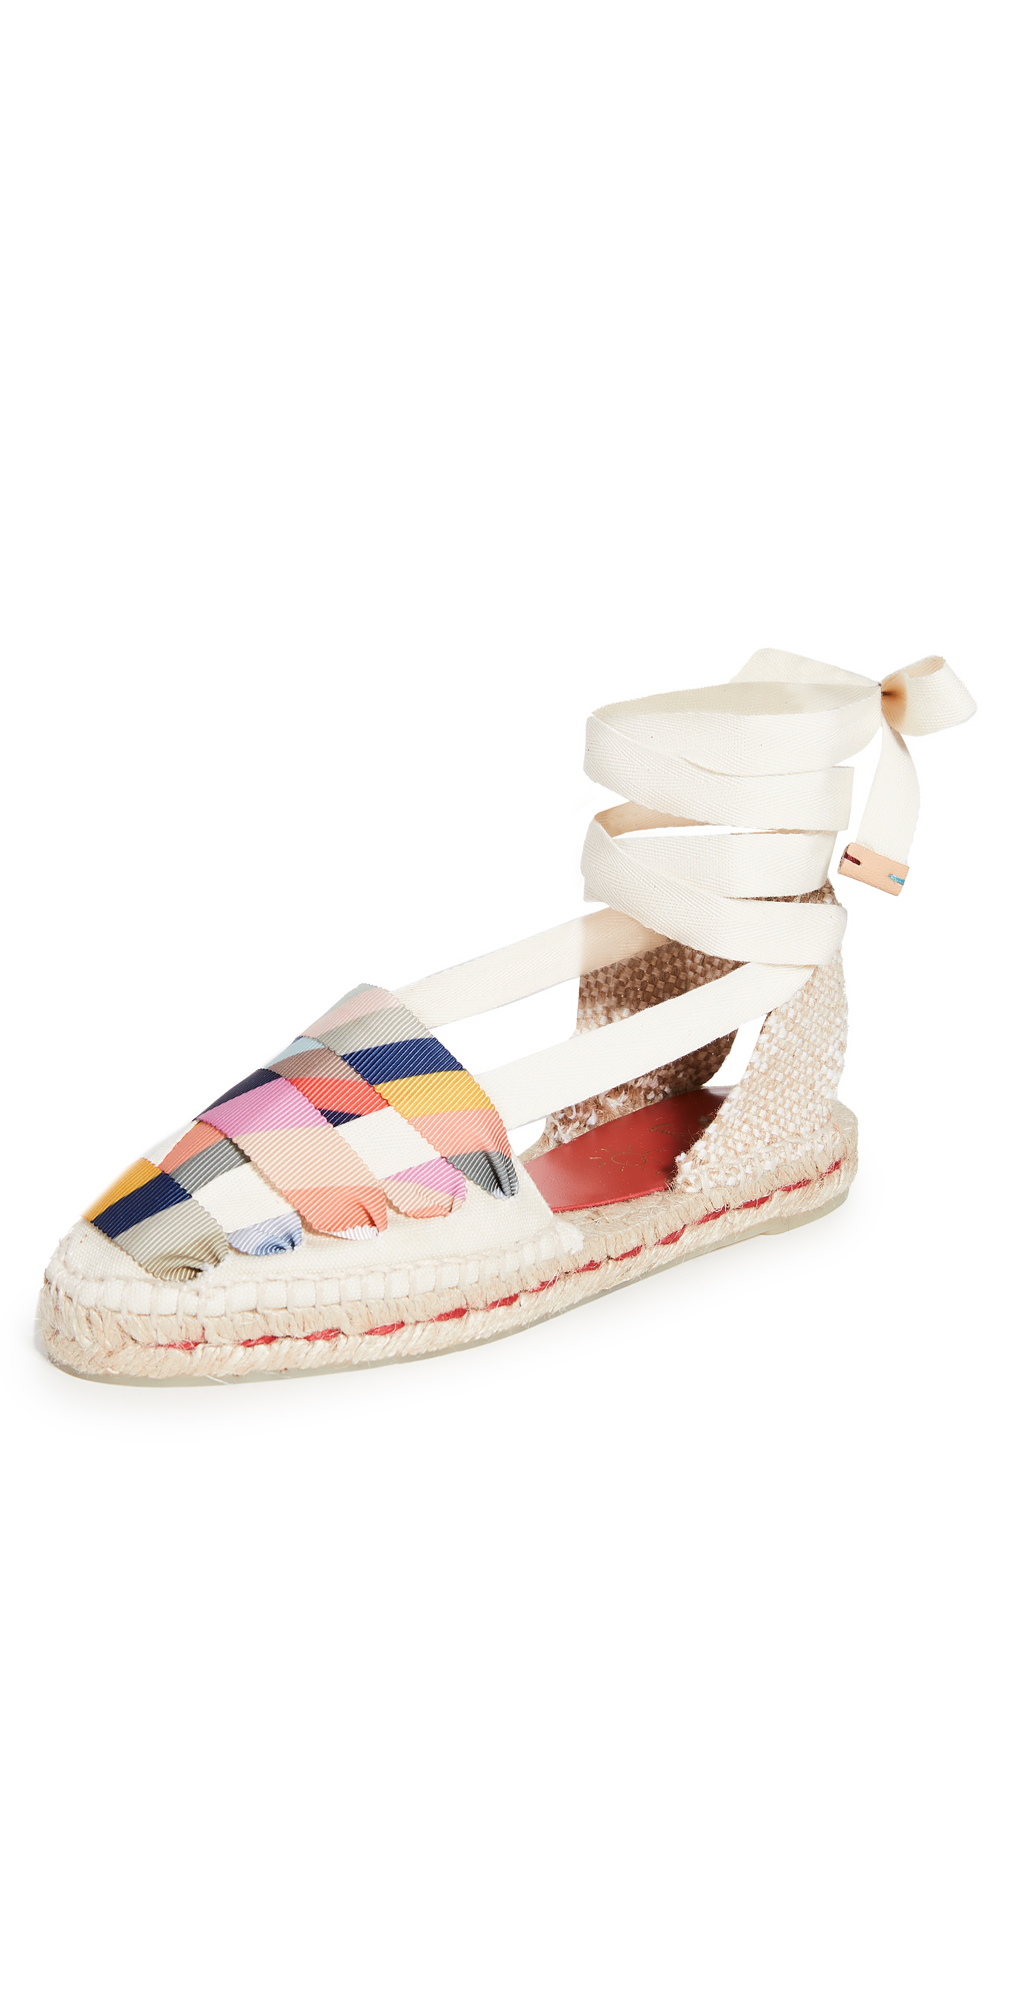 Castaner x Paul Smith Jean Lace Up Flat Espadrilles